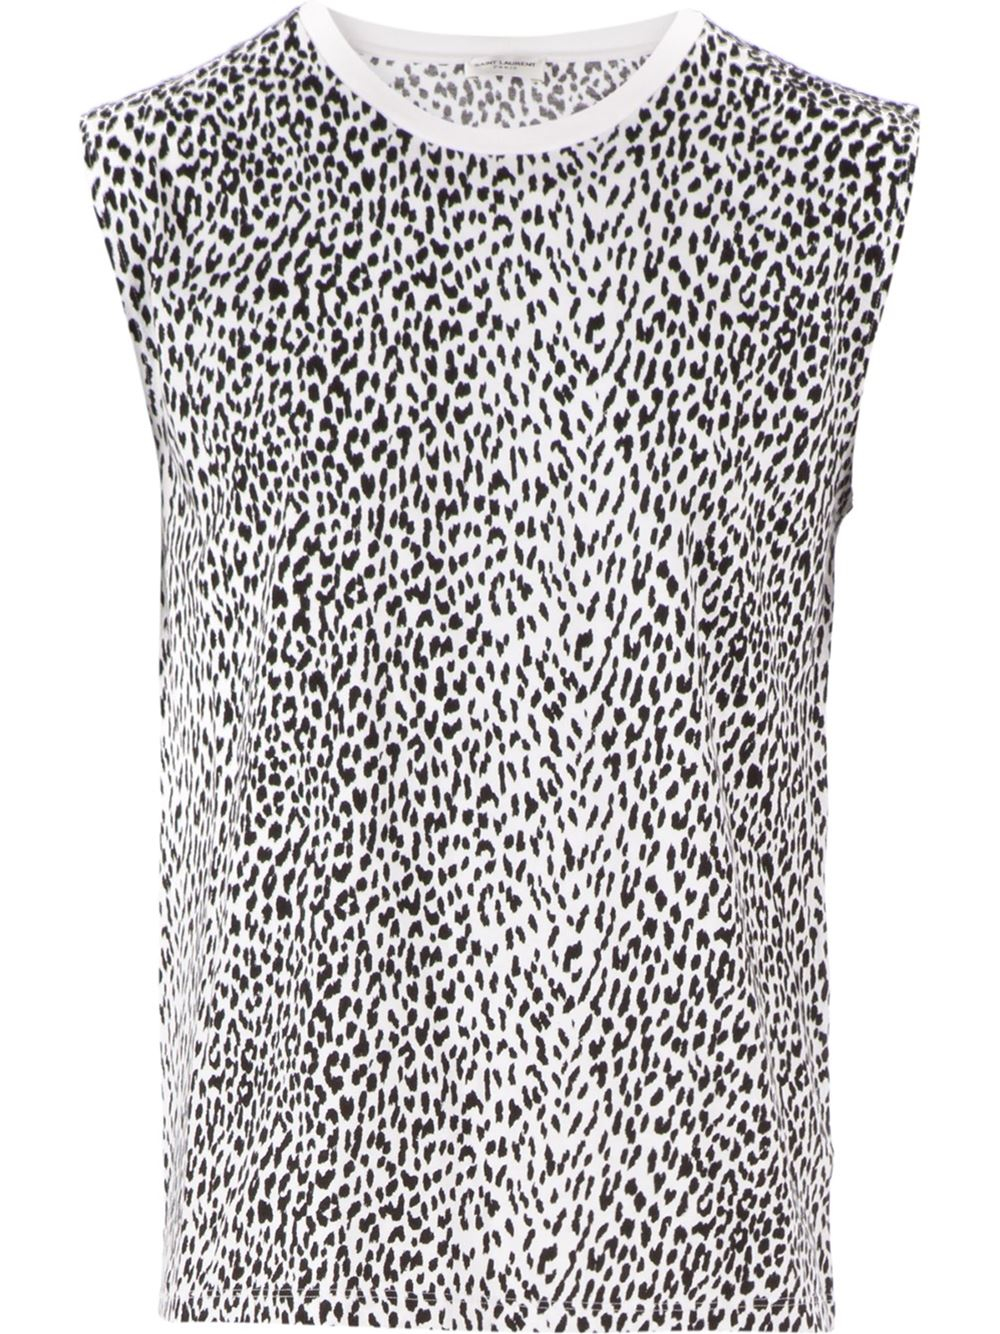 d7c486d66536ca Lyst - Saint Laurent Leopard Print Tank Top in Black for Men